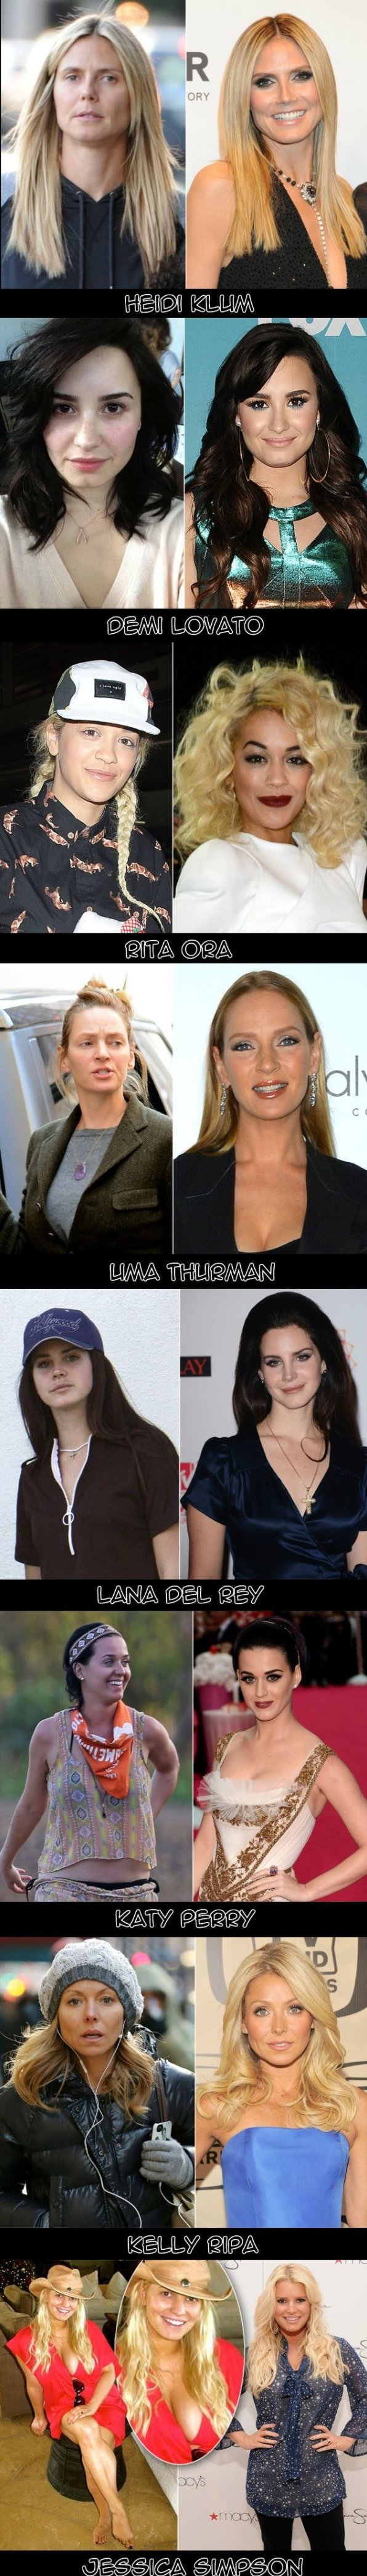 Some Celebrities Without Makeup